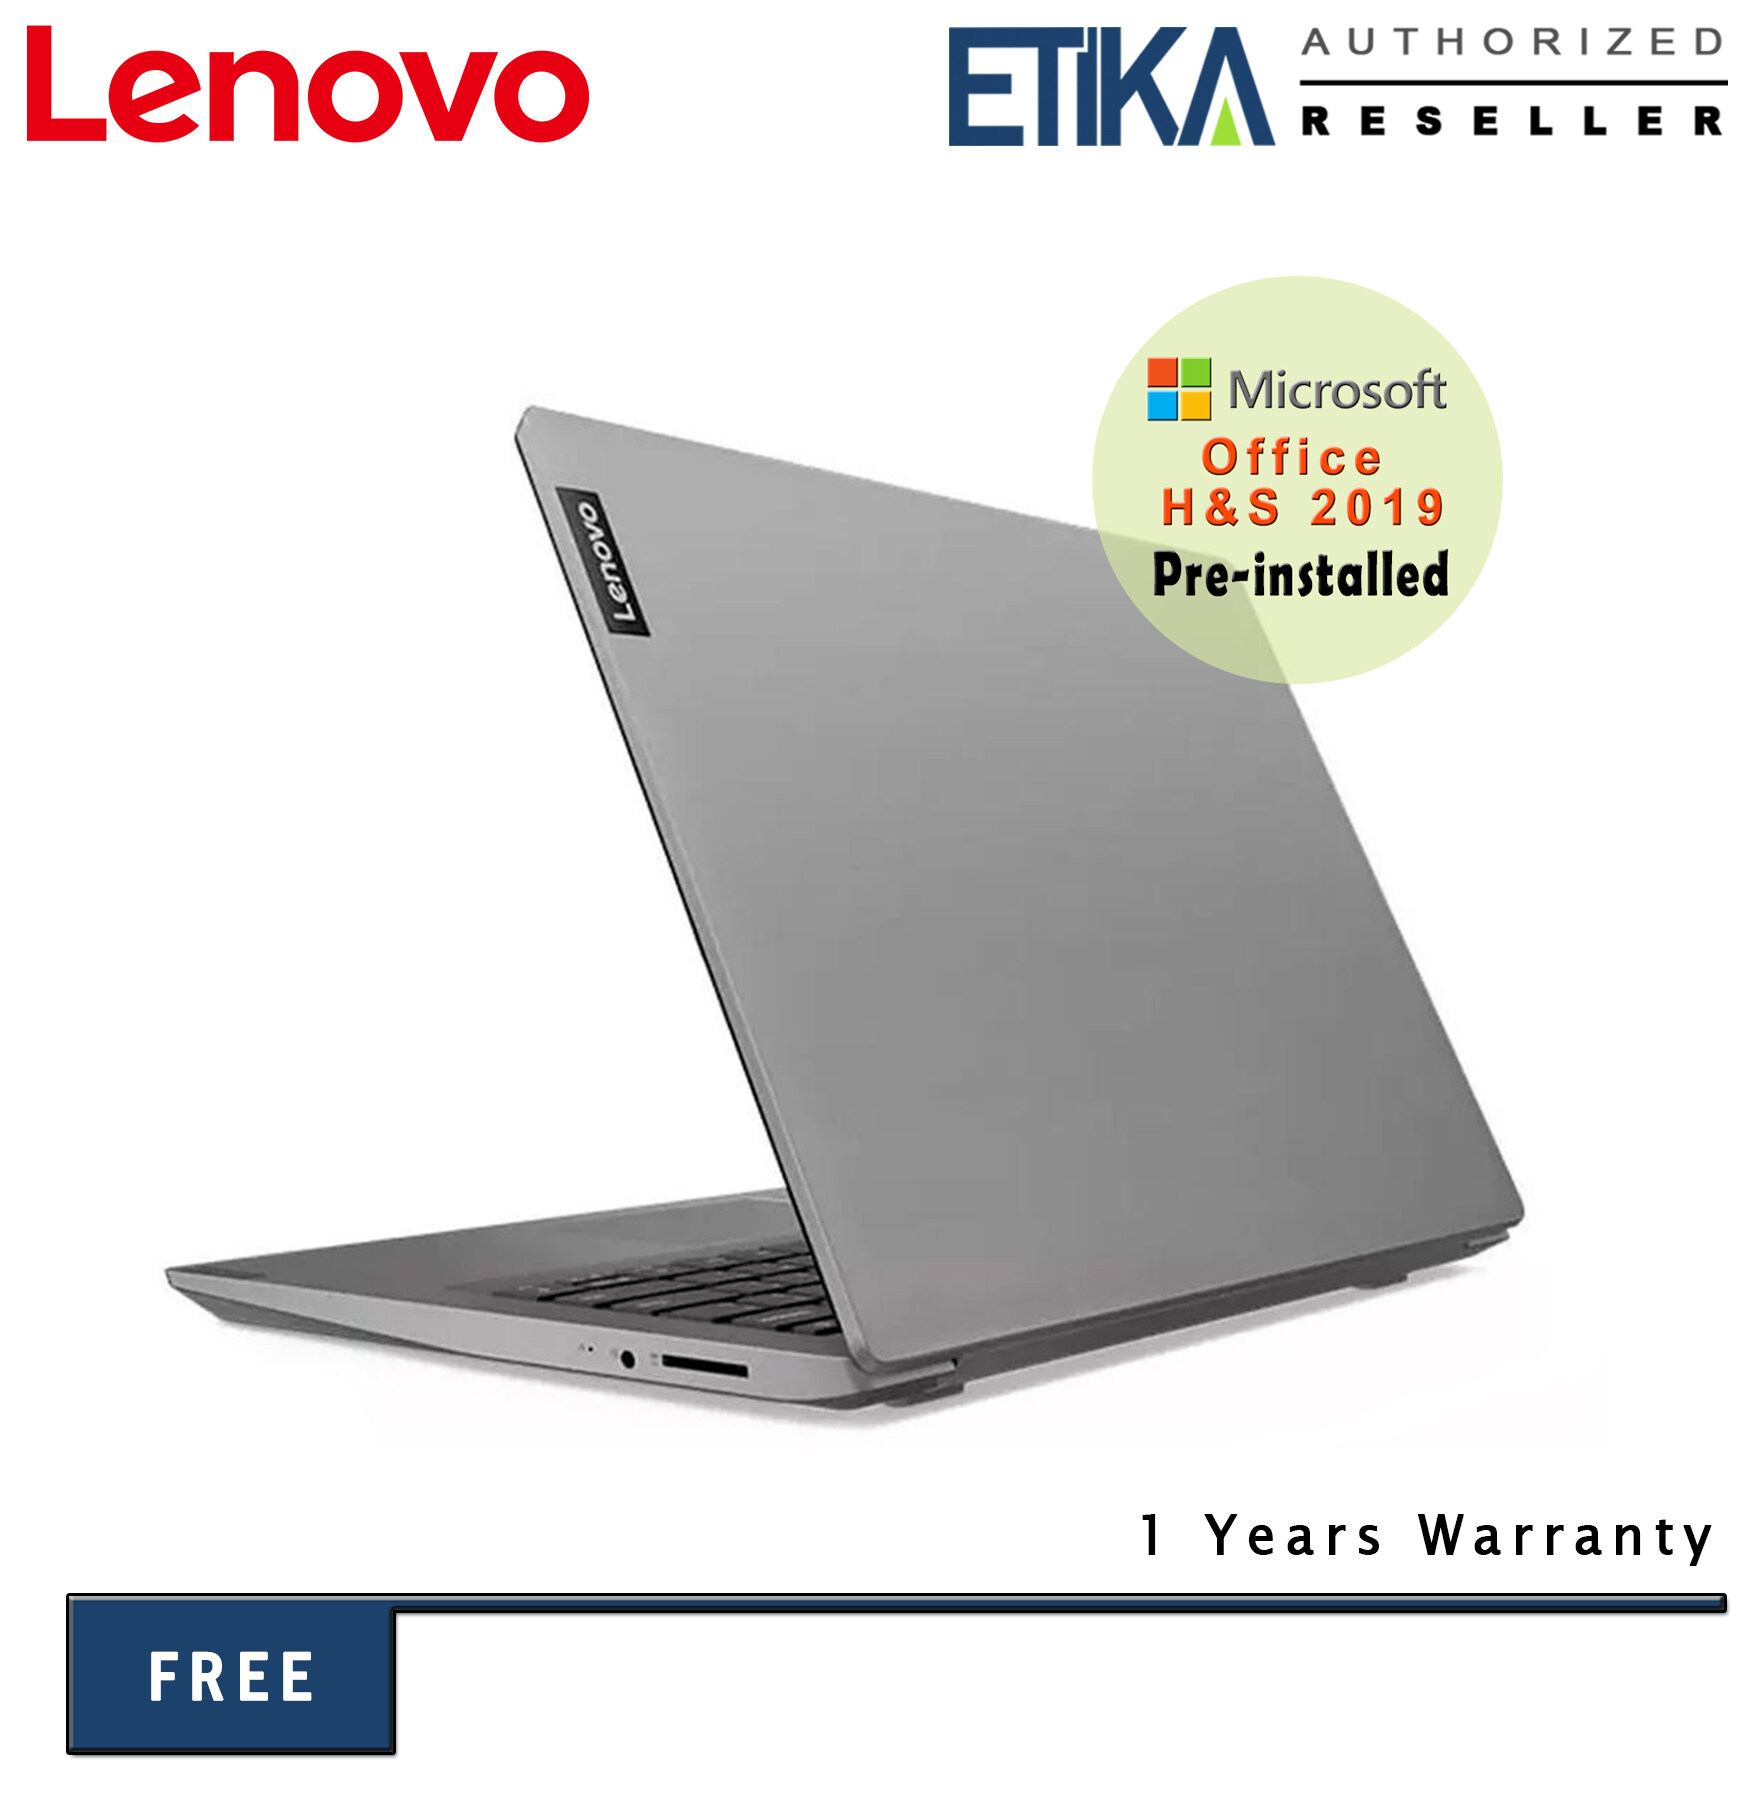 Lenovo S145-14AST 81ST005KMJ 14  HD Slim Laptop (A6-9225/ 4GB/ 256GB SSD/ Integrated/ W10+H&S) - Free Carrying Case Malaysia